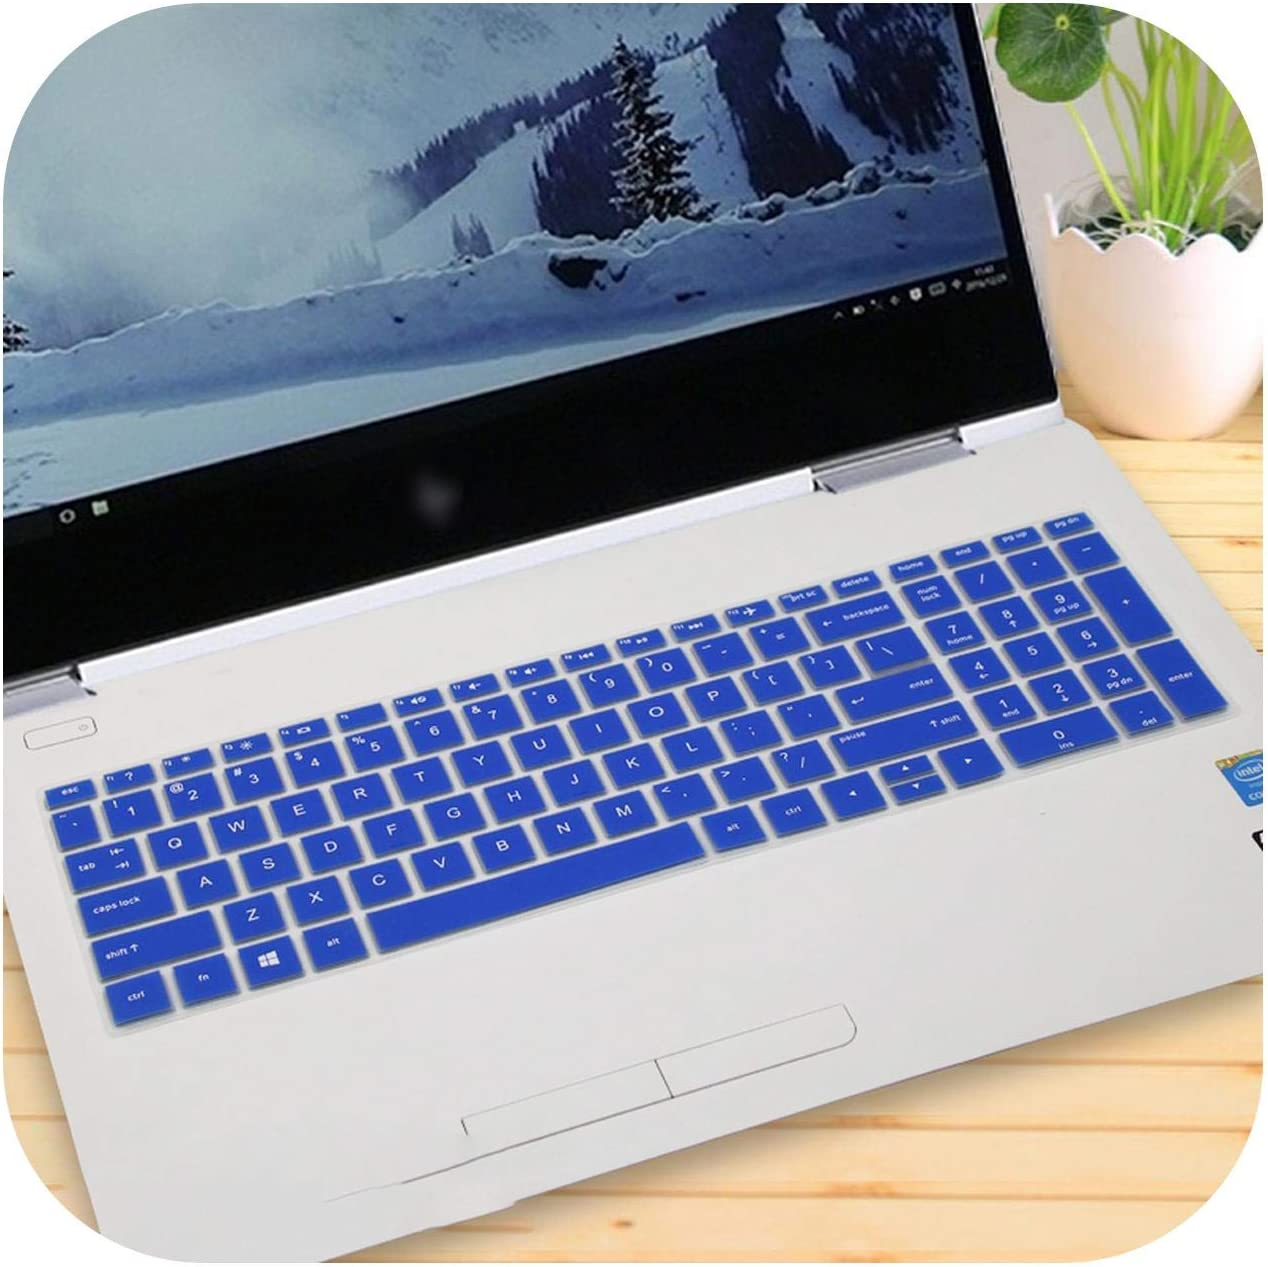 Cb075Tx 15 15.6 Inch Notebook Laptop Keyboard Cover Protector Skin-Candyblue for Hp Envy X360 15 Bd001Tx 15 Cb073Tx